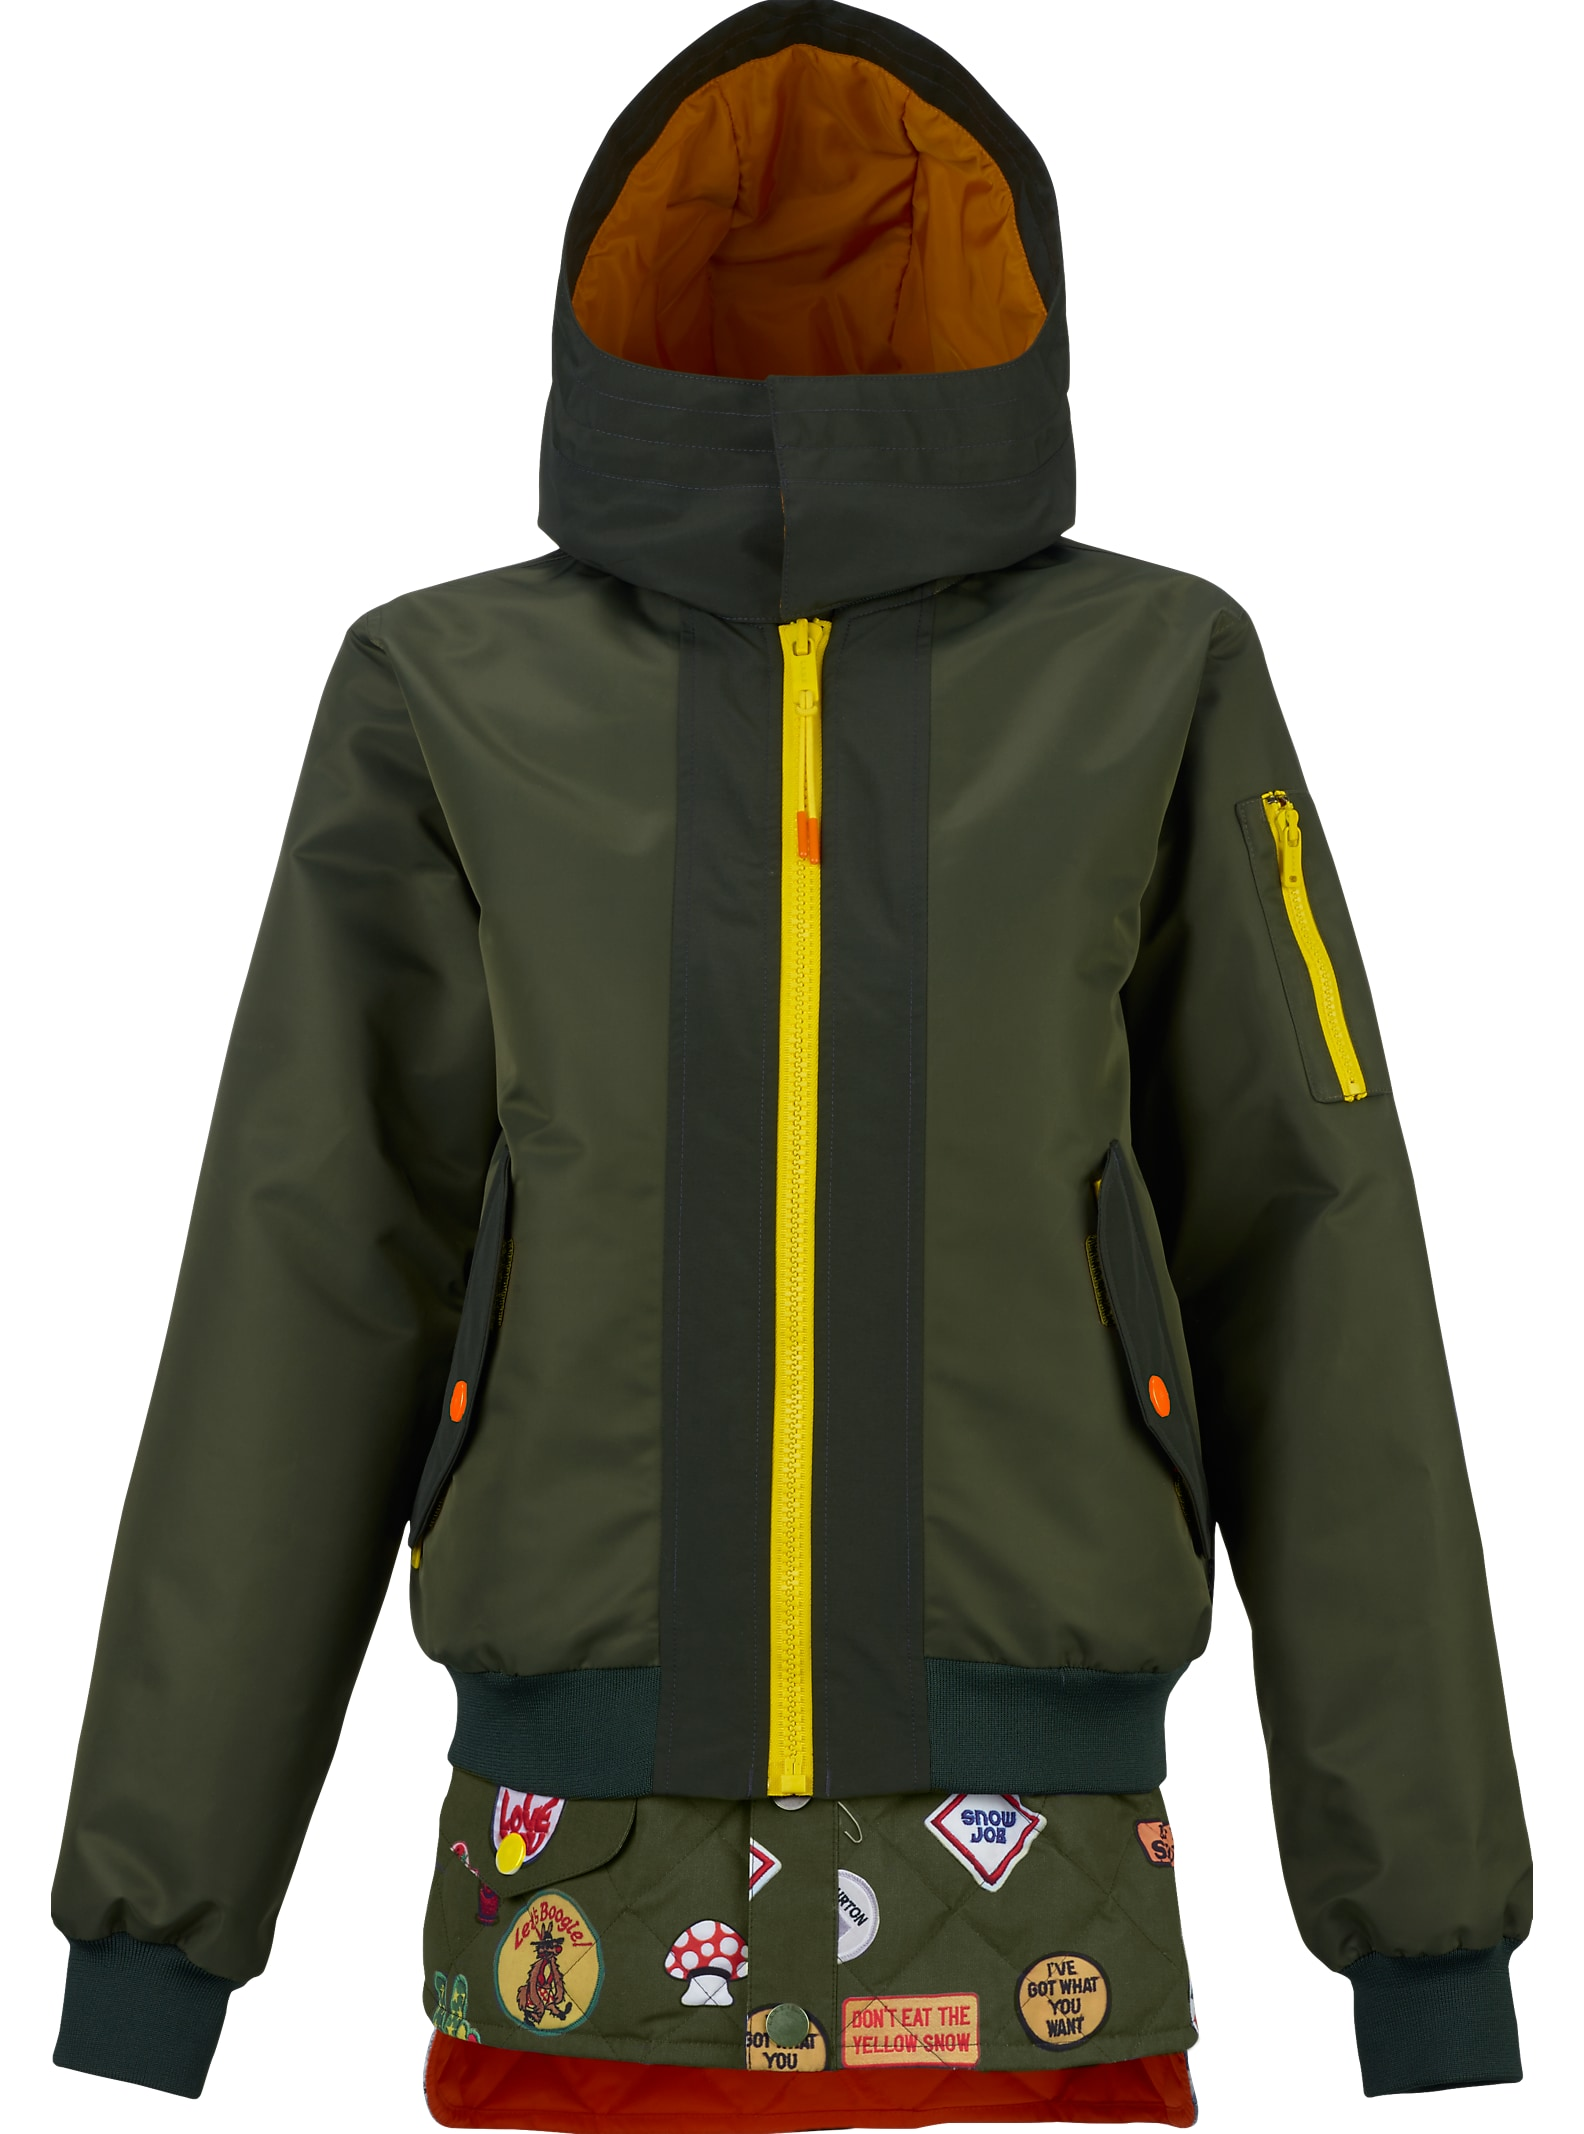 L.A.M.B. x Burton - Veste aviateur Cherry affichage en Dusty Olive / Army Green